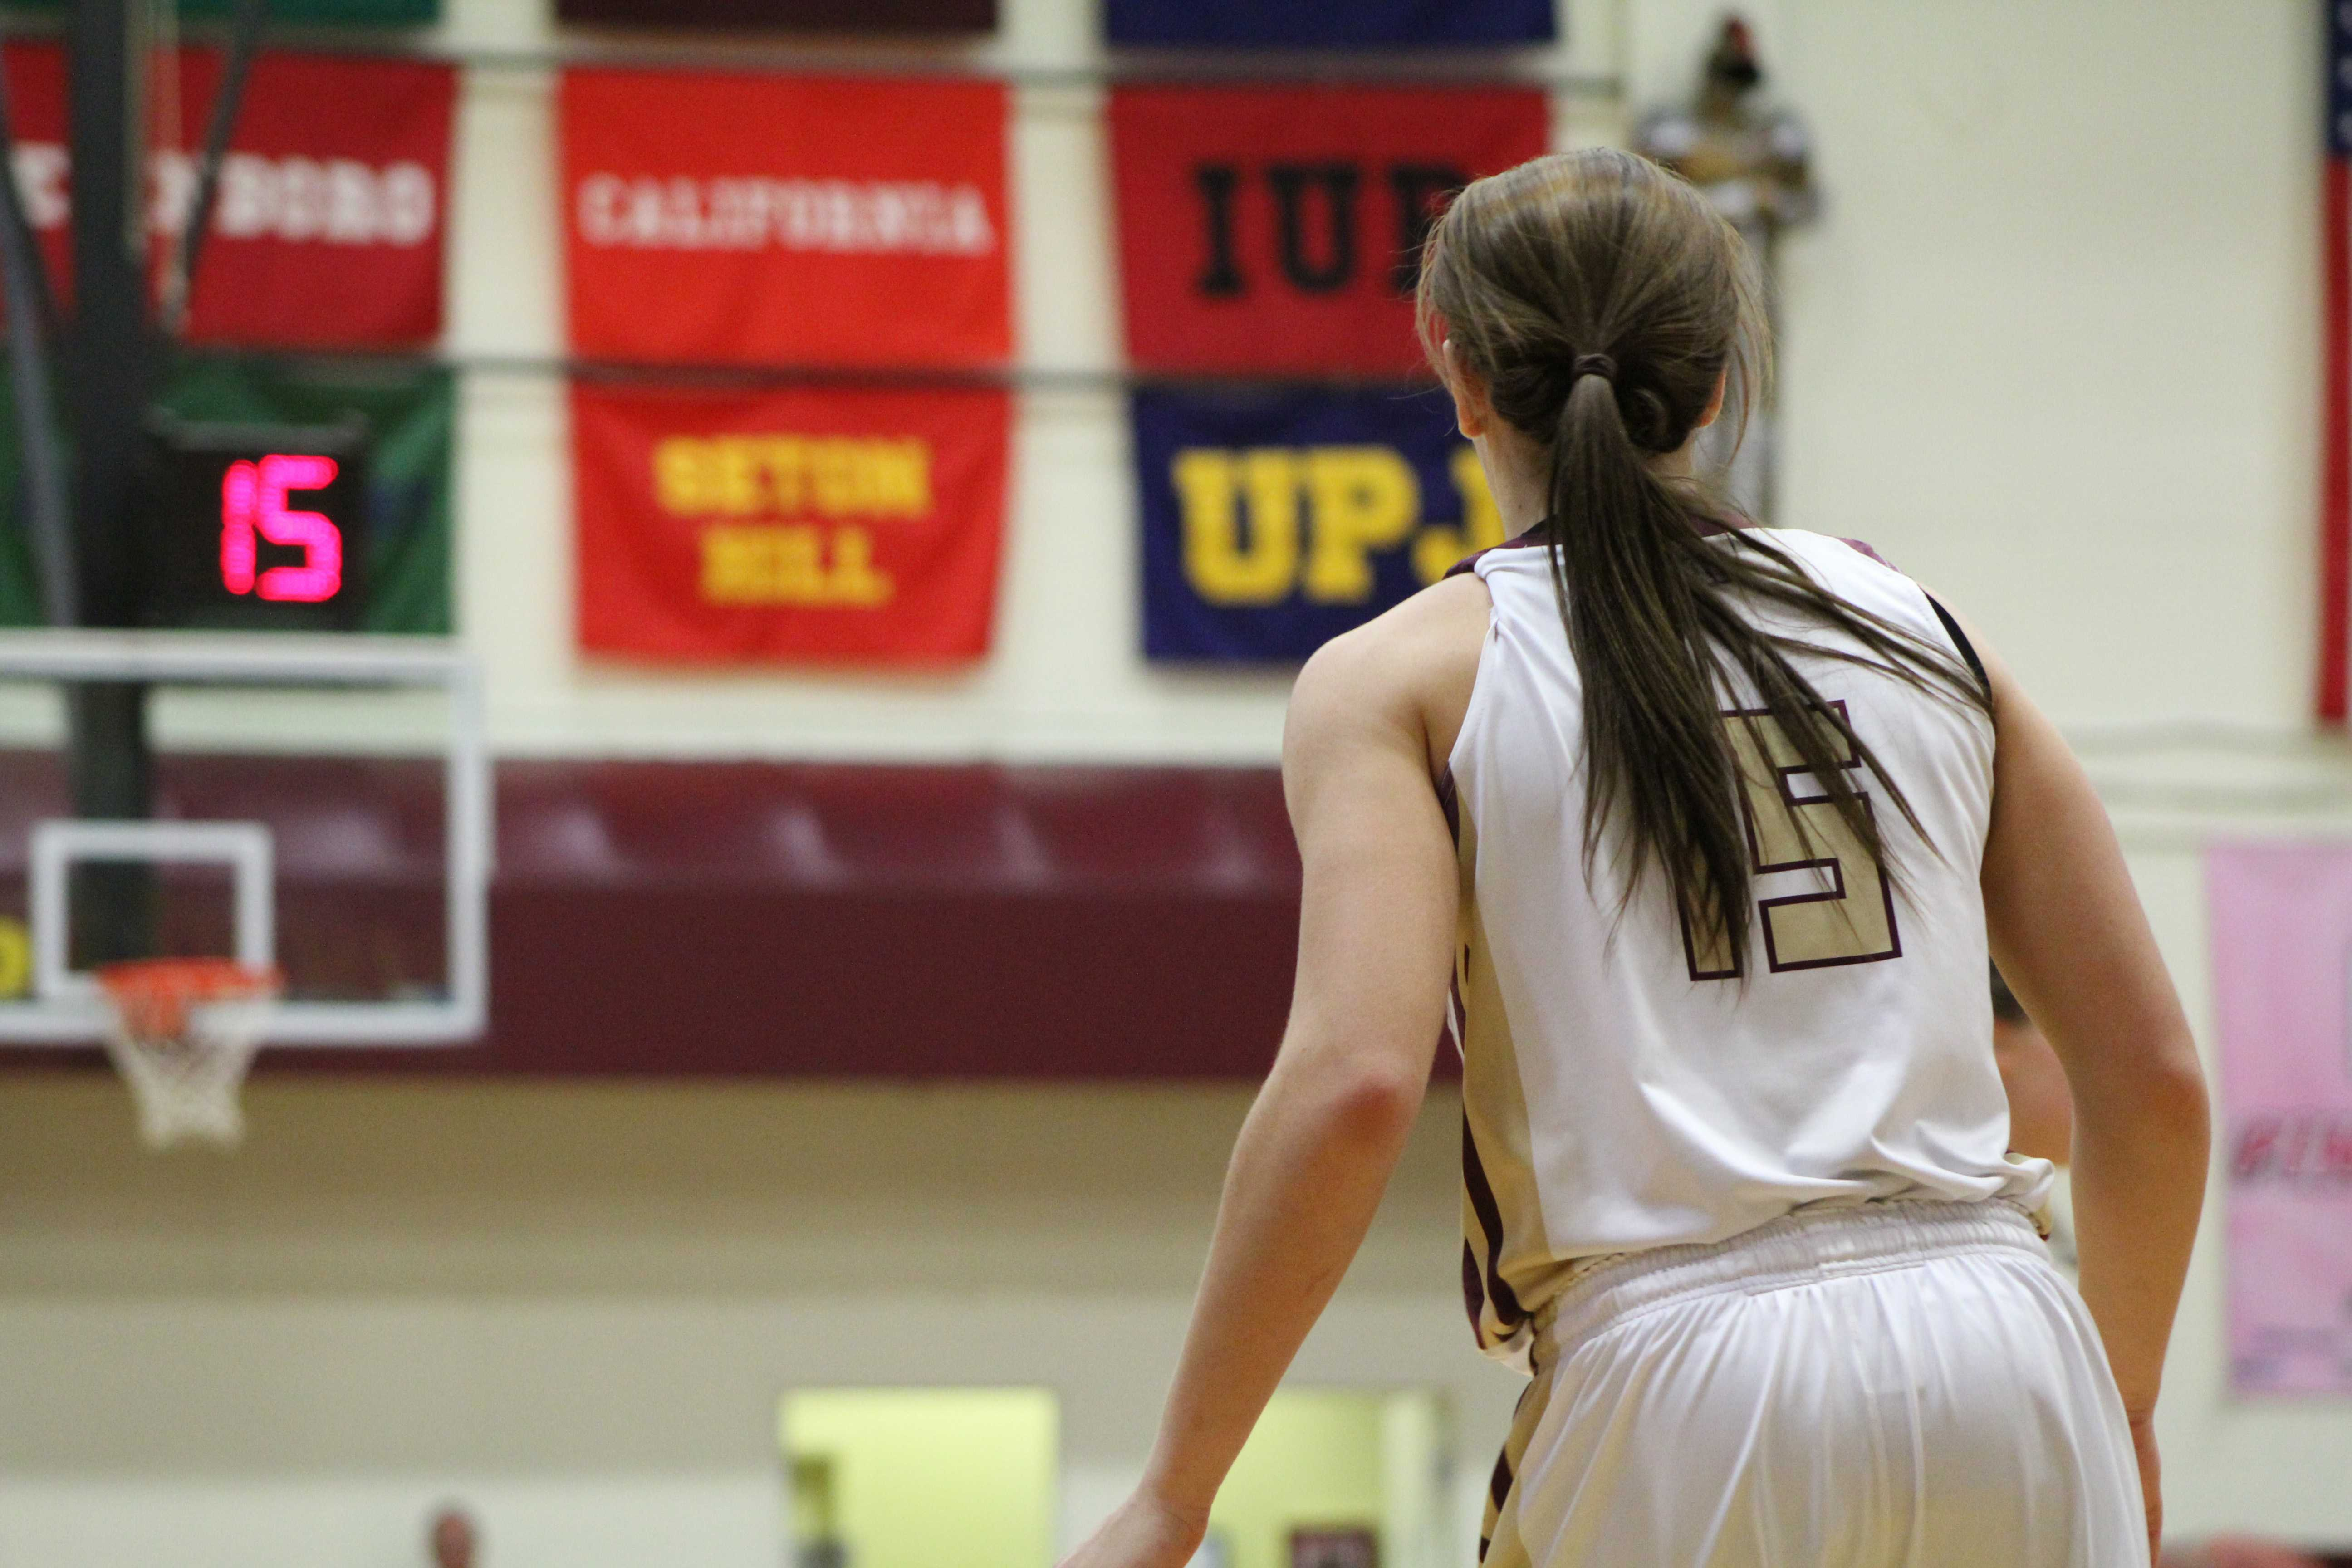 Women trail IUP,  California by 1 game